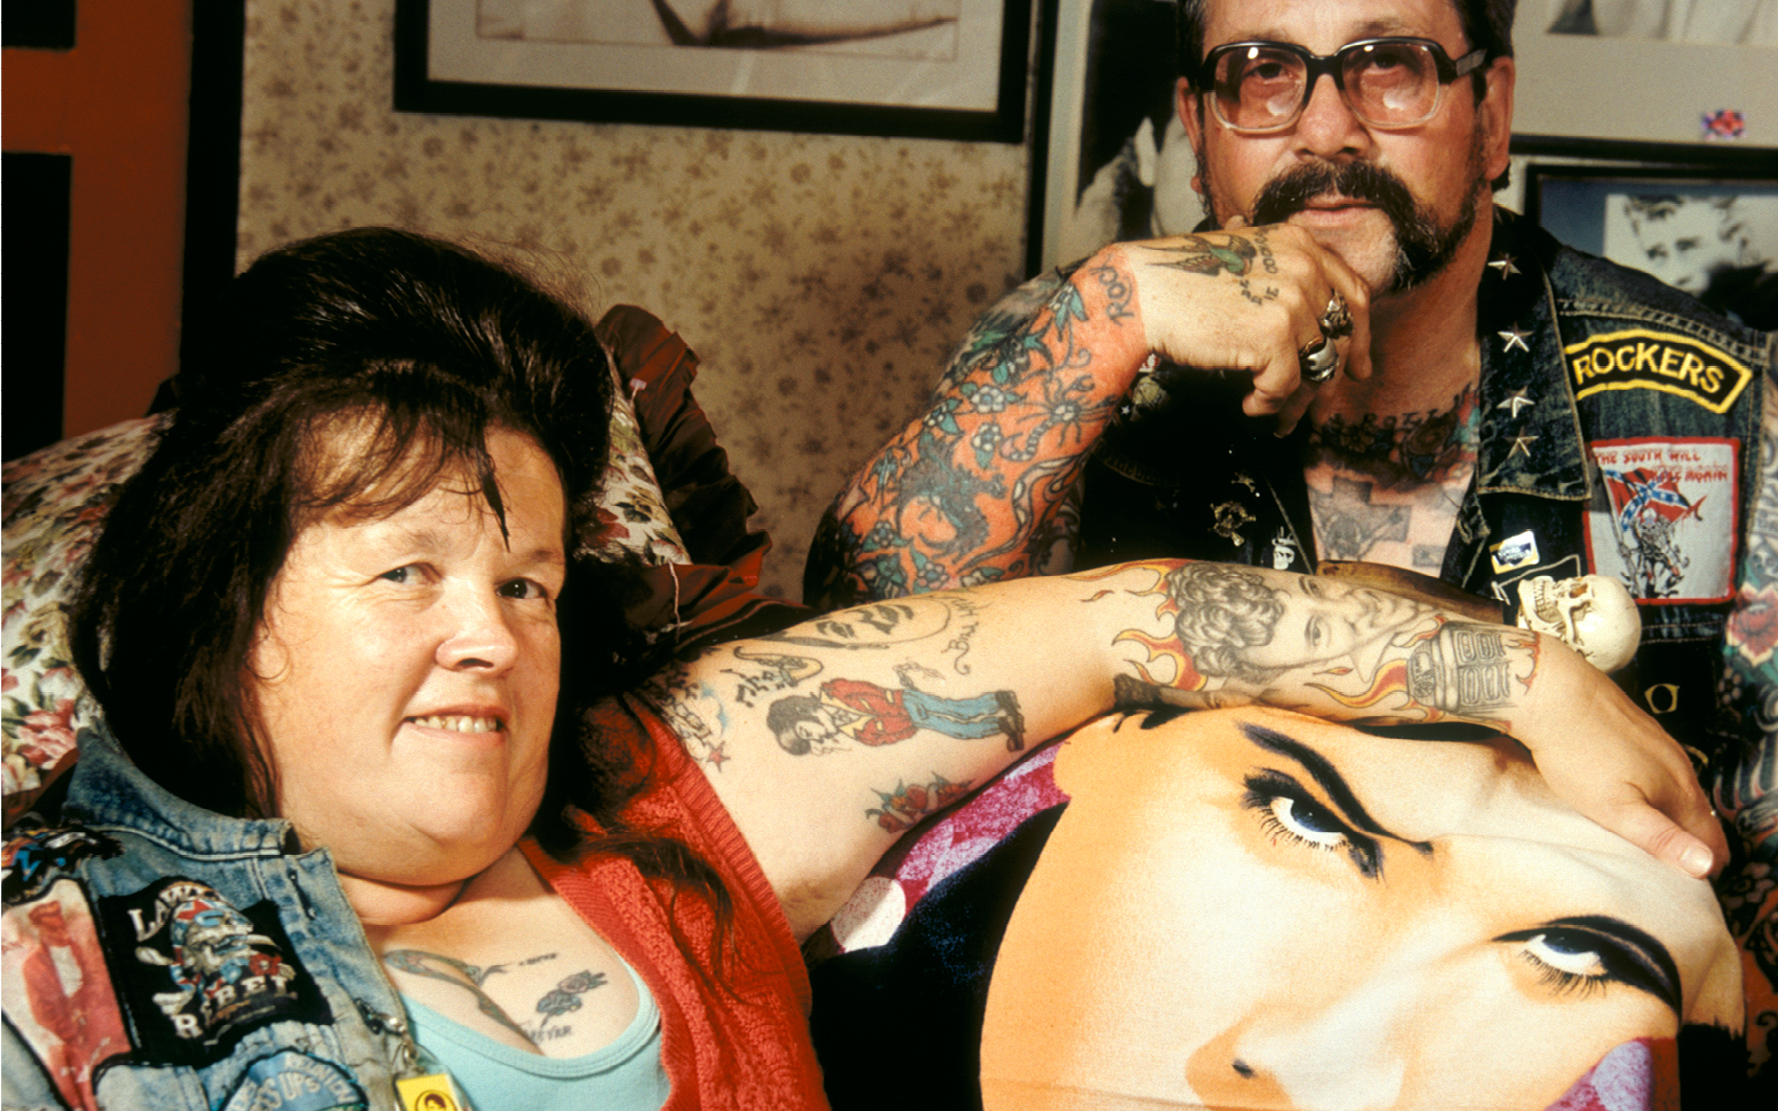 Two middle aged Elvis / Rock n' Roll fans covered with tattoos and wearing denim waistcoats with patches, posing for camera, in their home, UK 1990's  ©  David Turner  / PYMCA